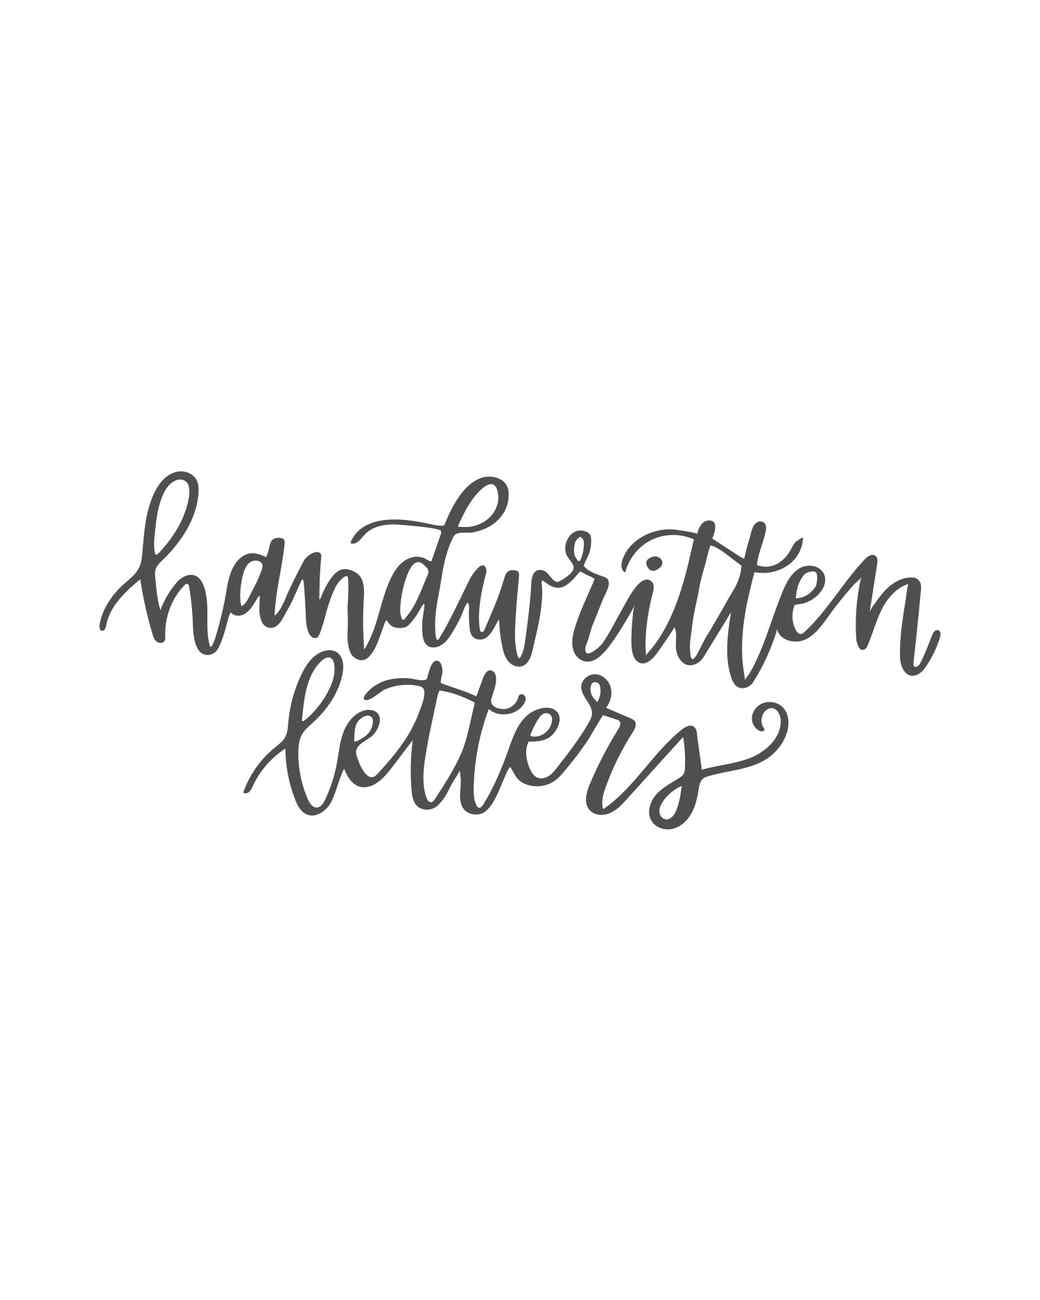 """handwritten letters"" in calligraphy"